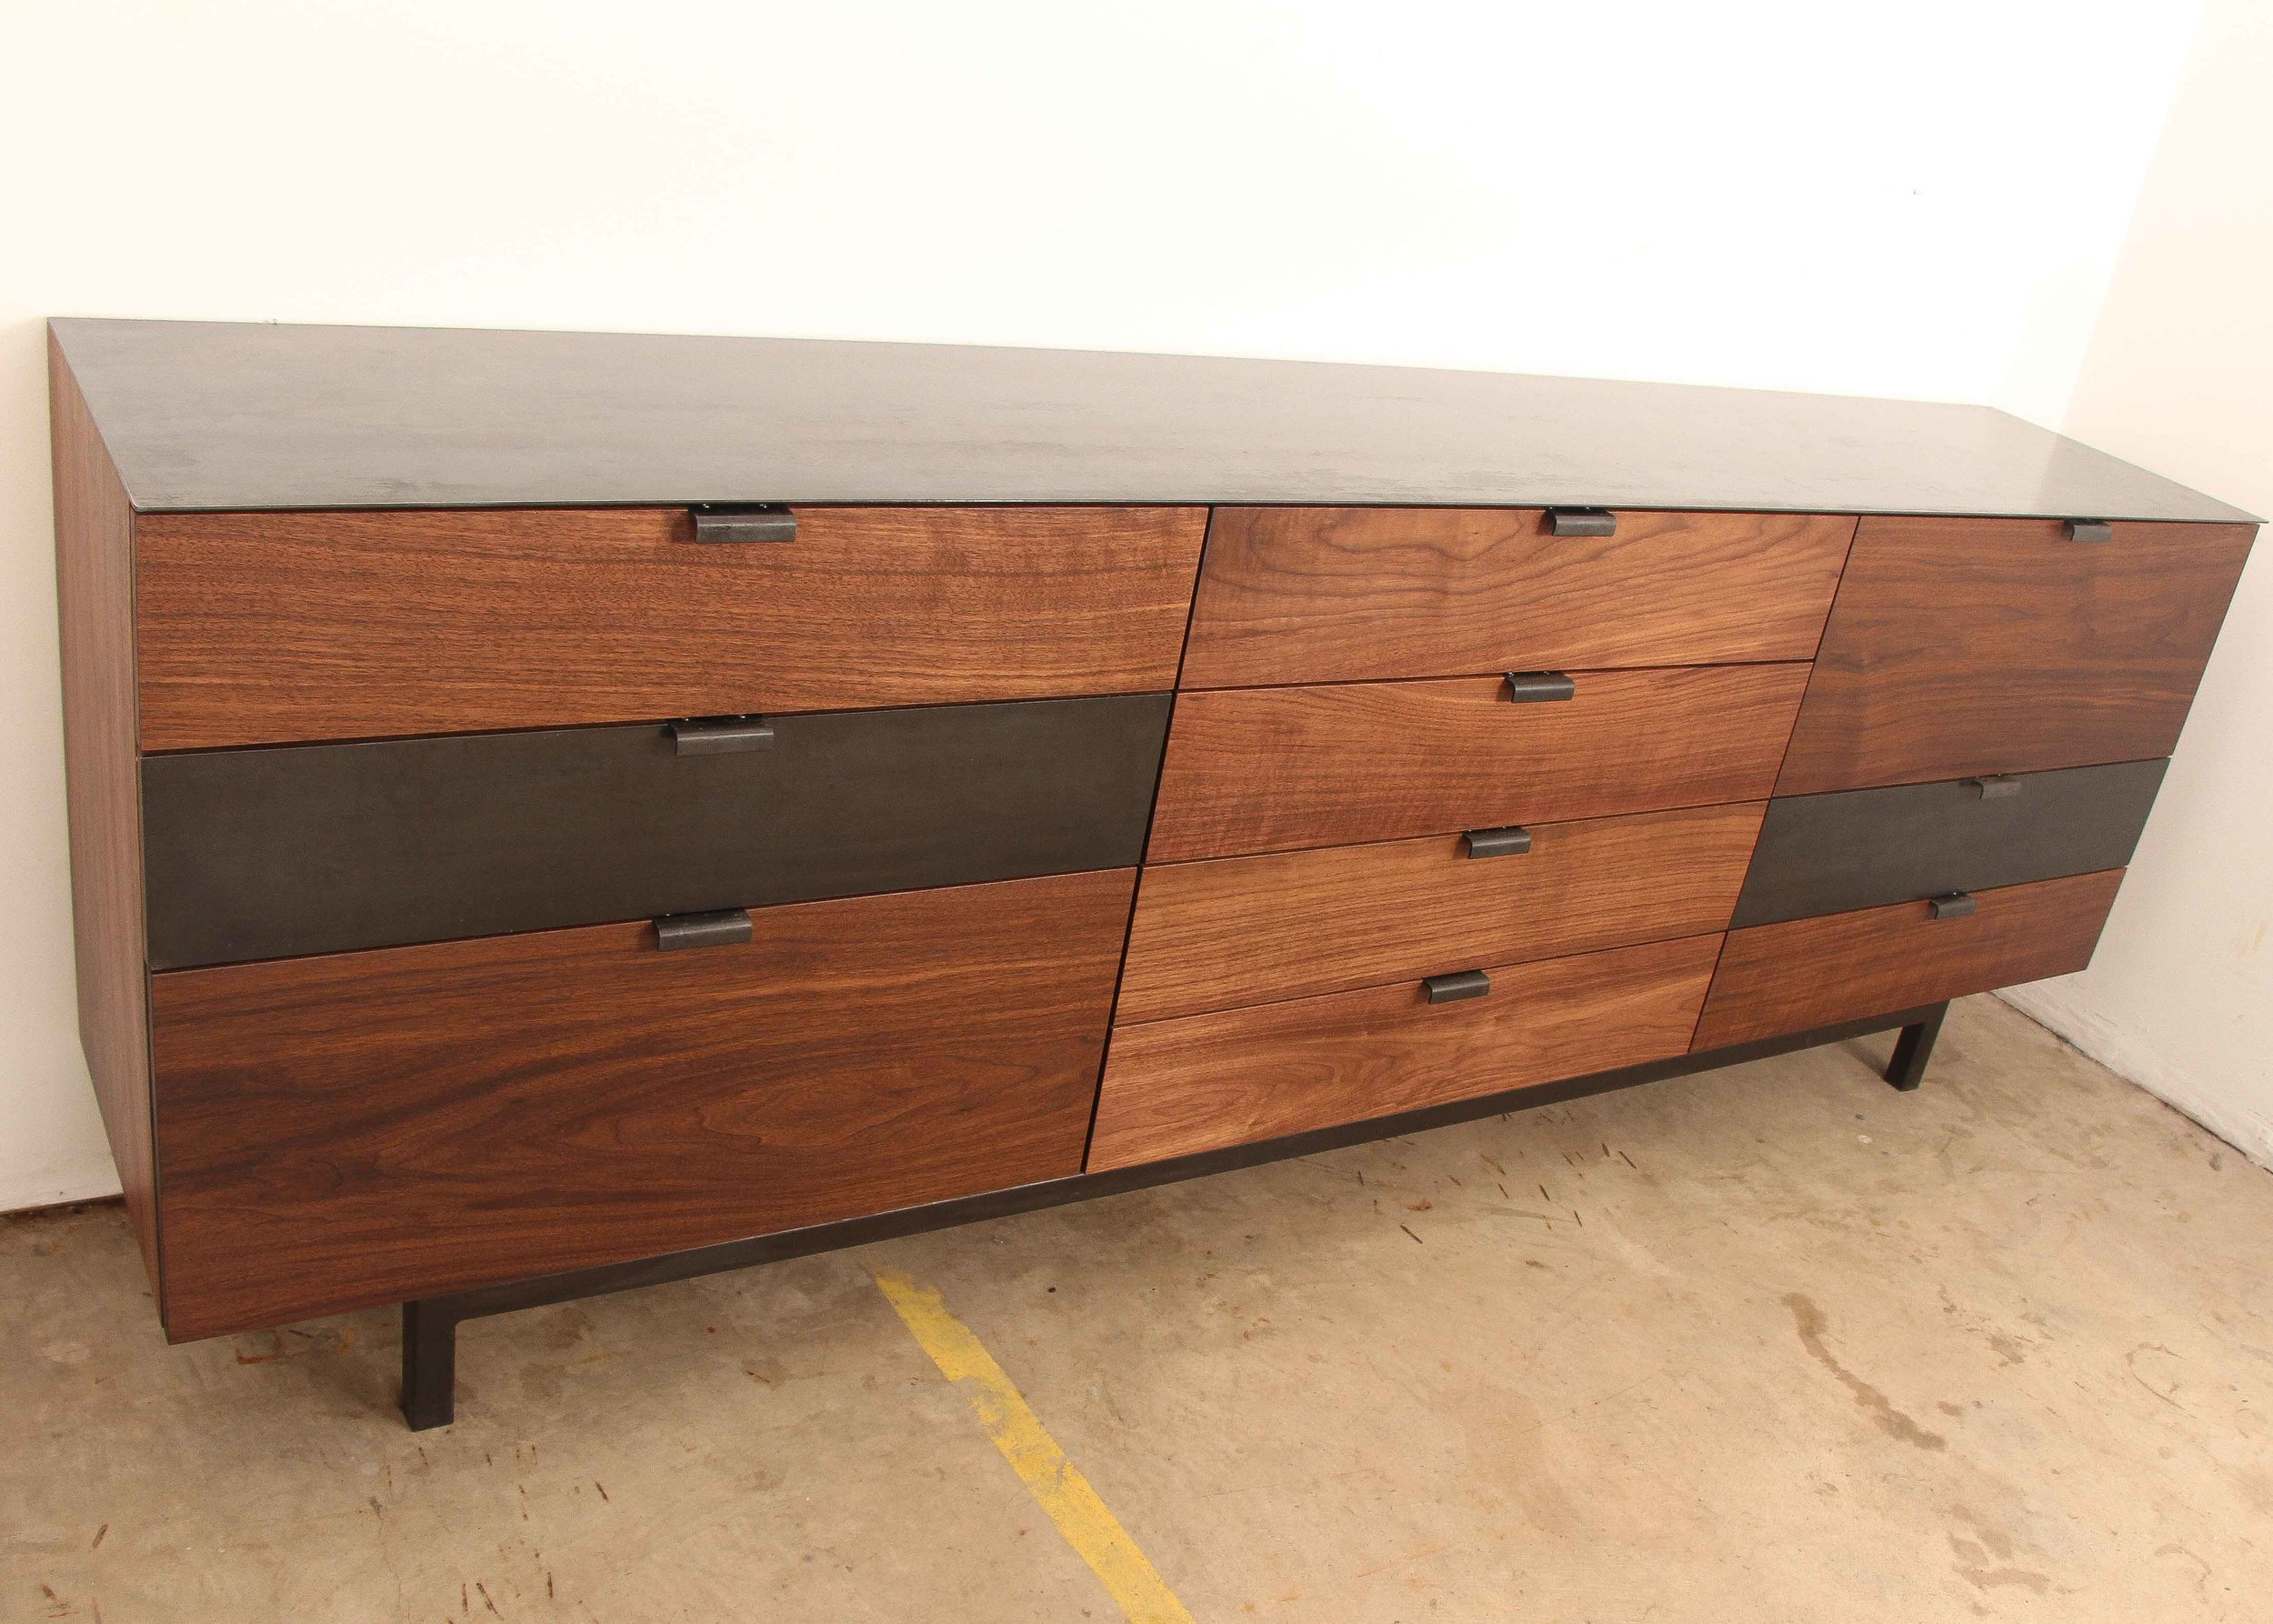 wall_steel_10drawer_walnut_mixed-1.jpg